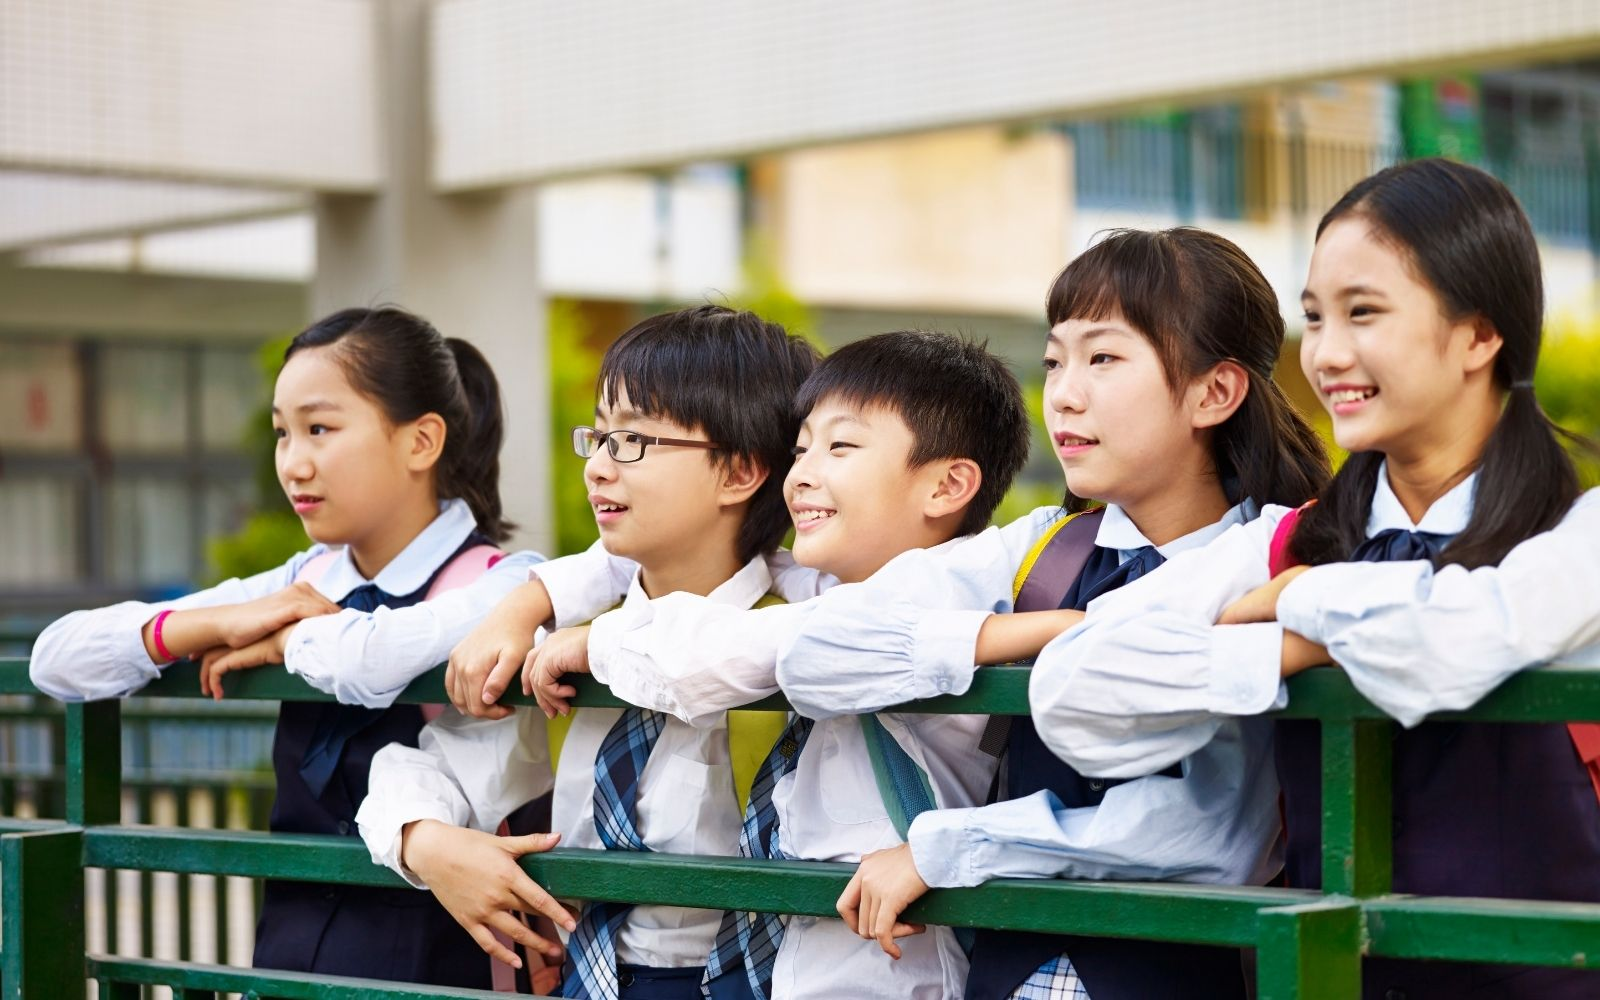 How To Get a Job Teaching English in South Korea